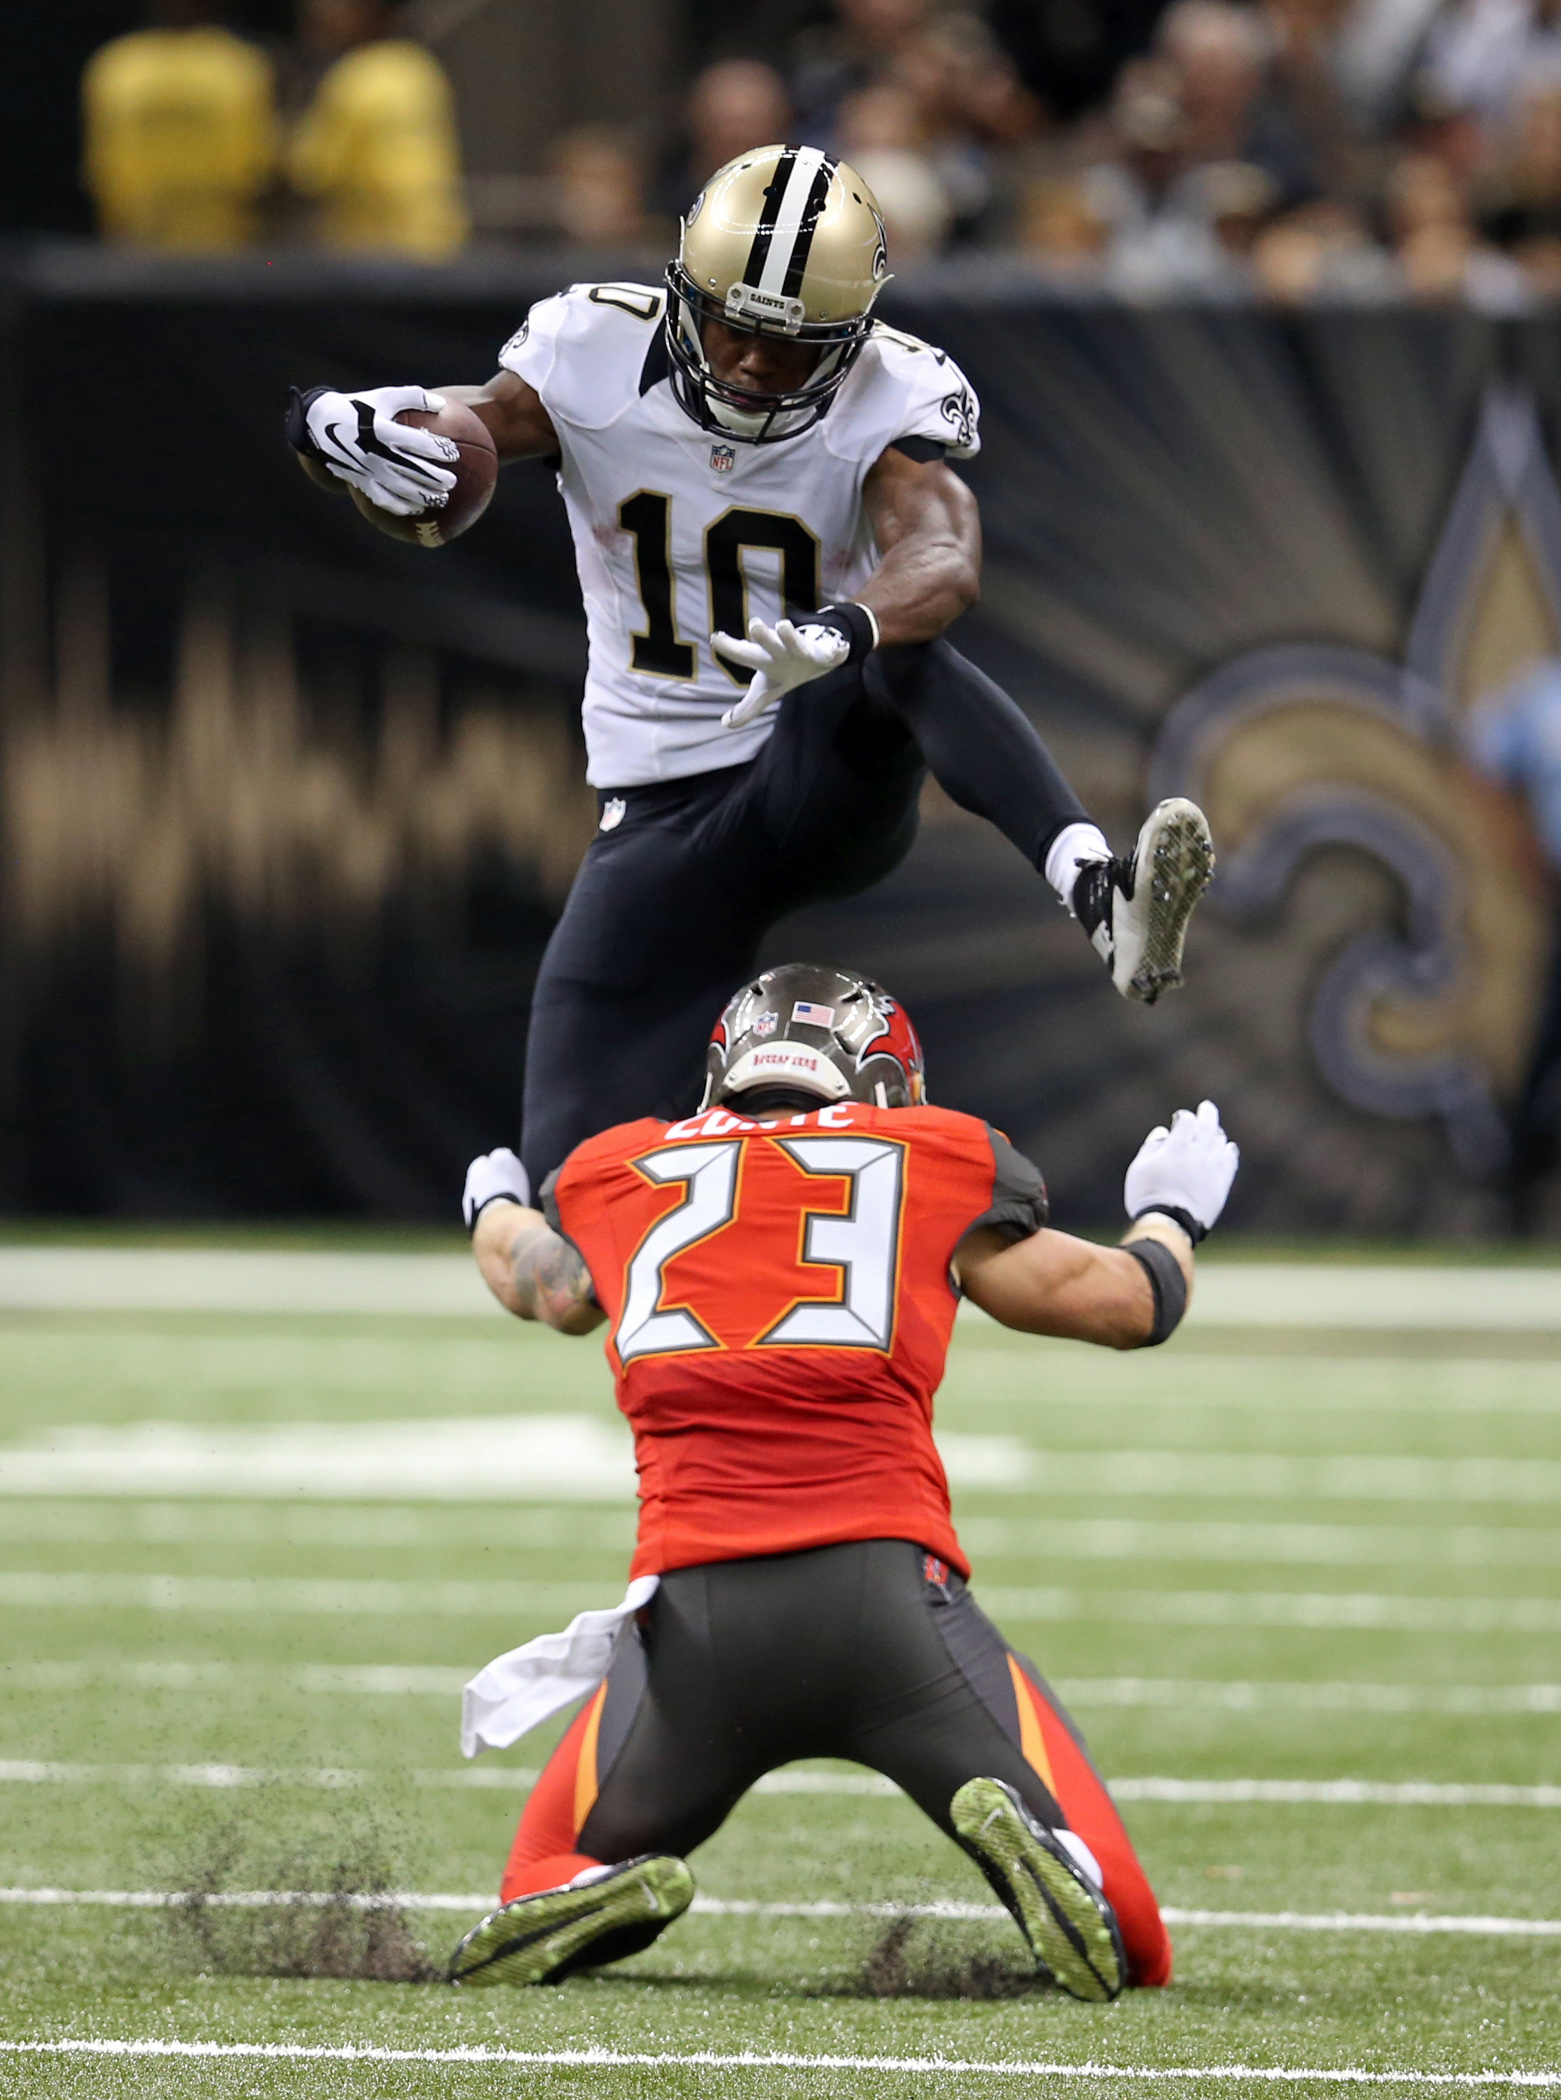 Brandin Cooks injury update: Fantasy value falls with QB concerns